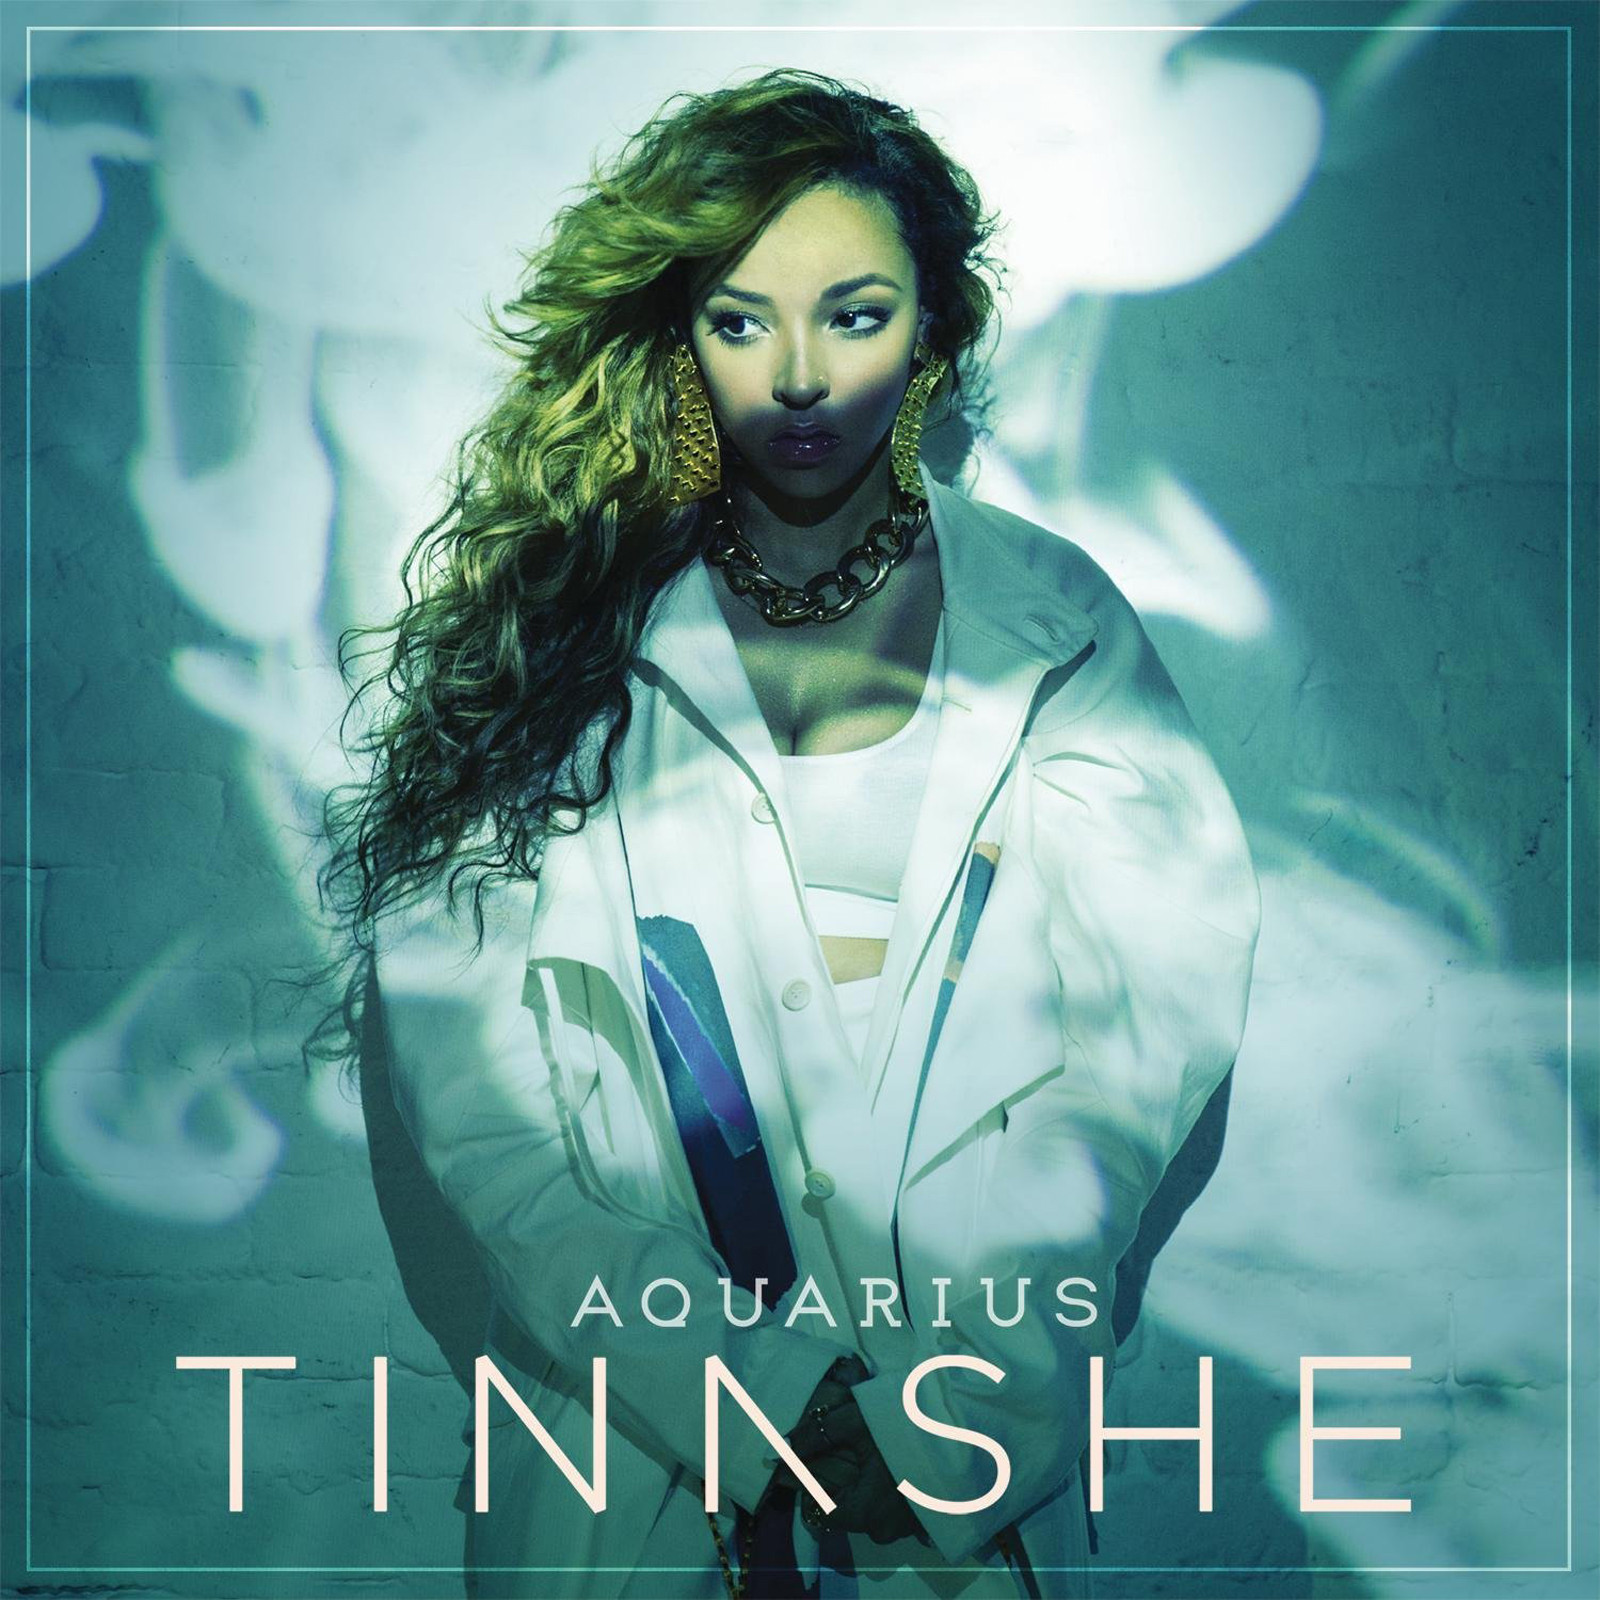 [Image: la-et-ms-pop-reviews-tinashe-aquarius-20141007]